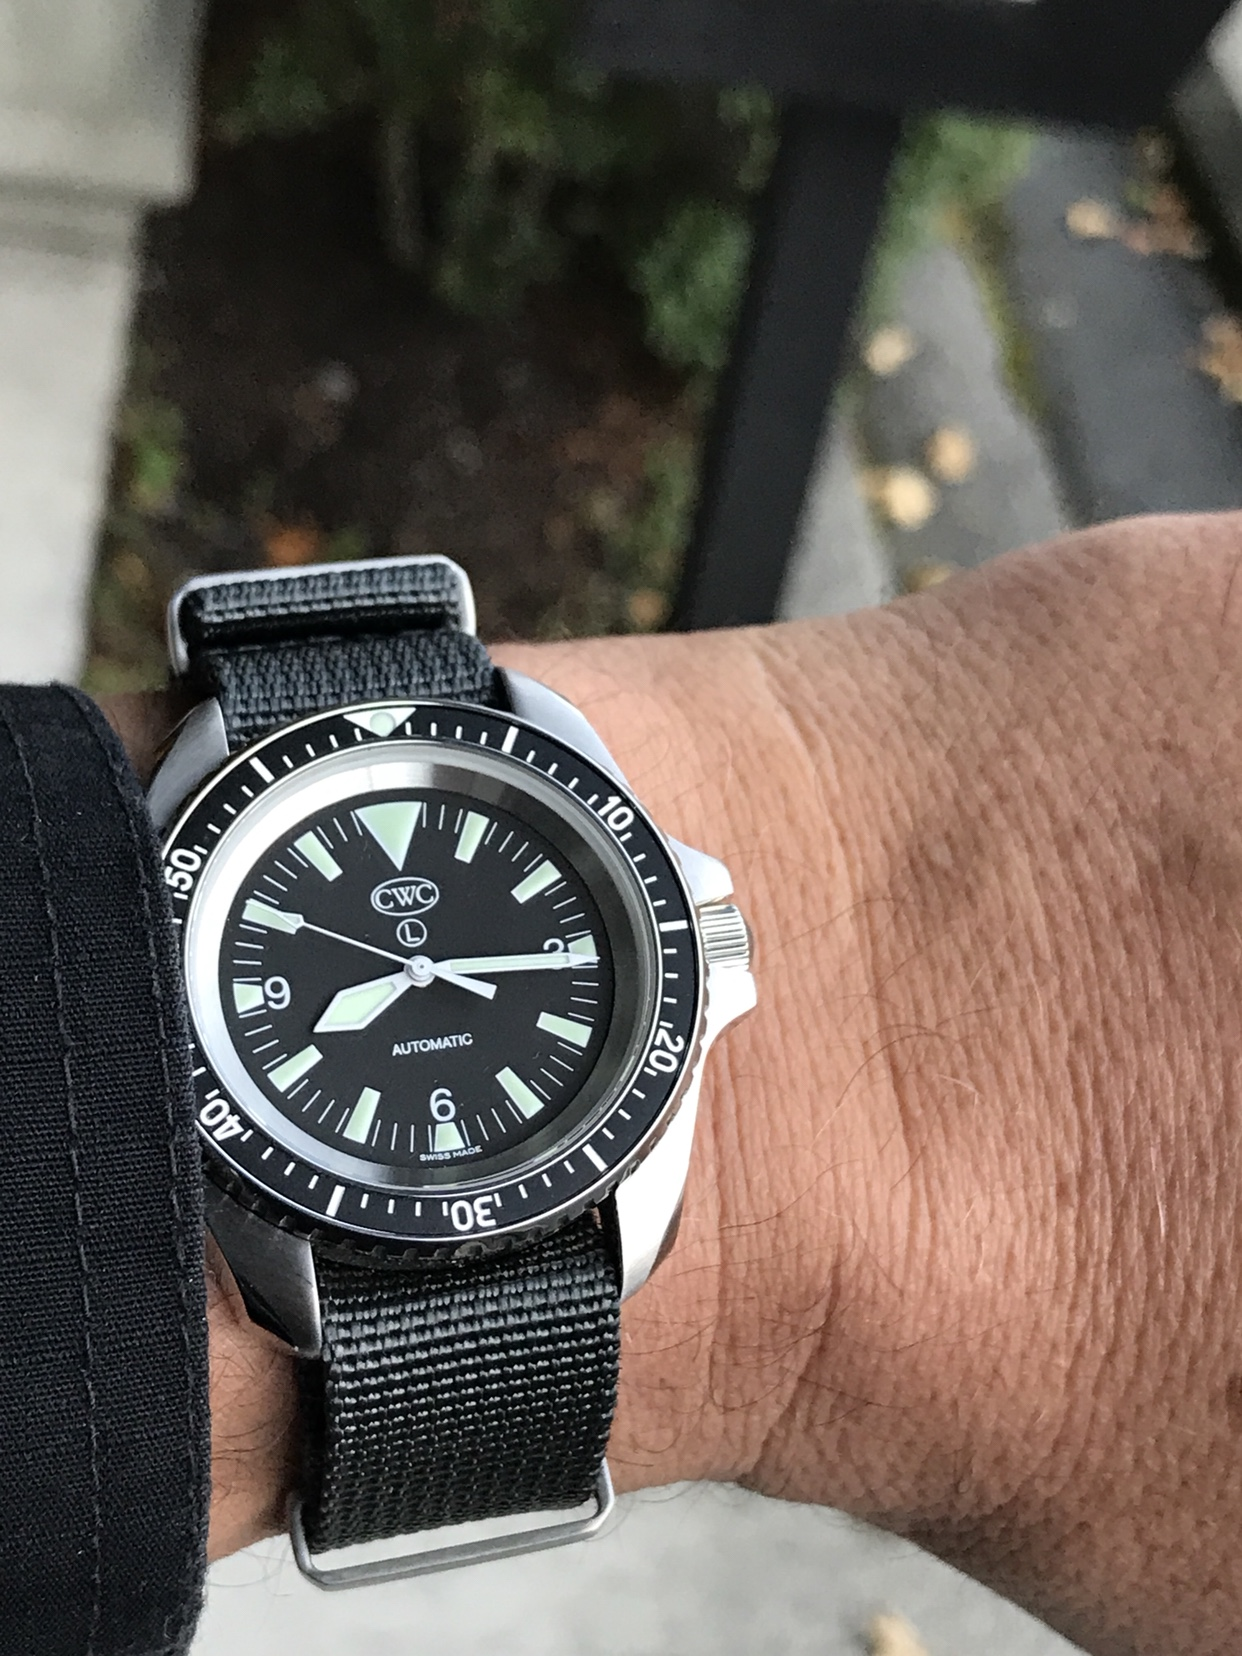 CWC RN Divers - MK.2 upgrades - review - Page 5